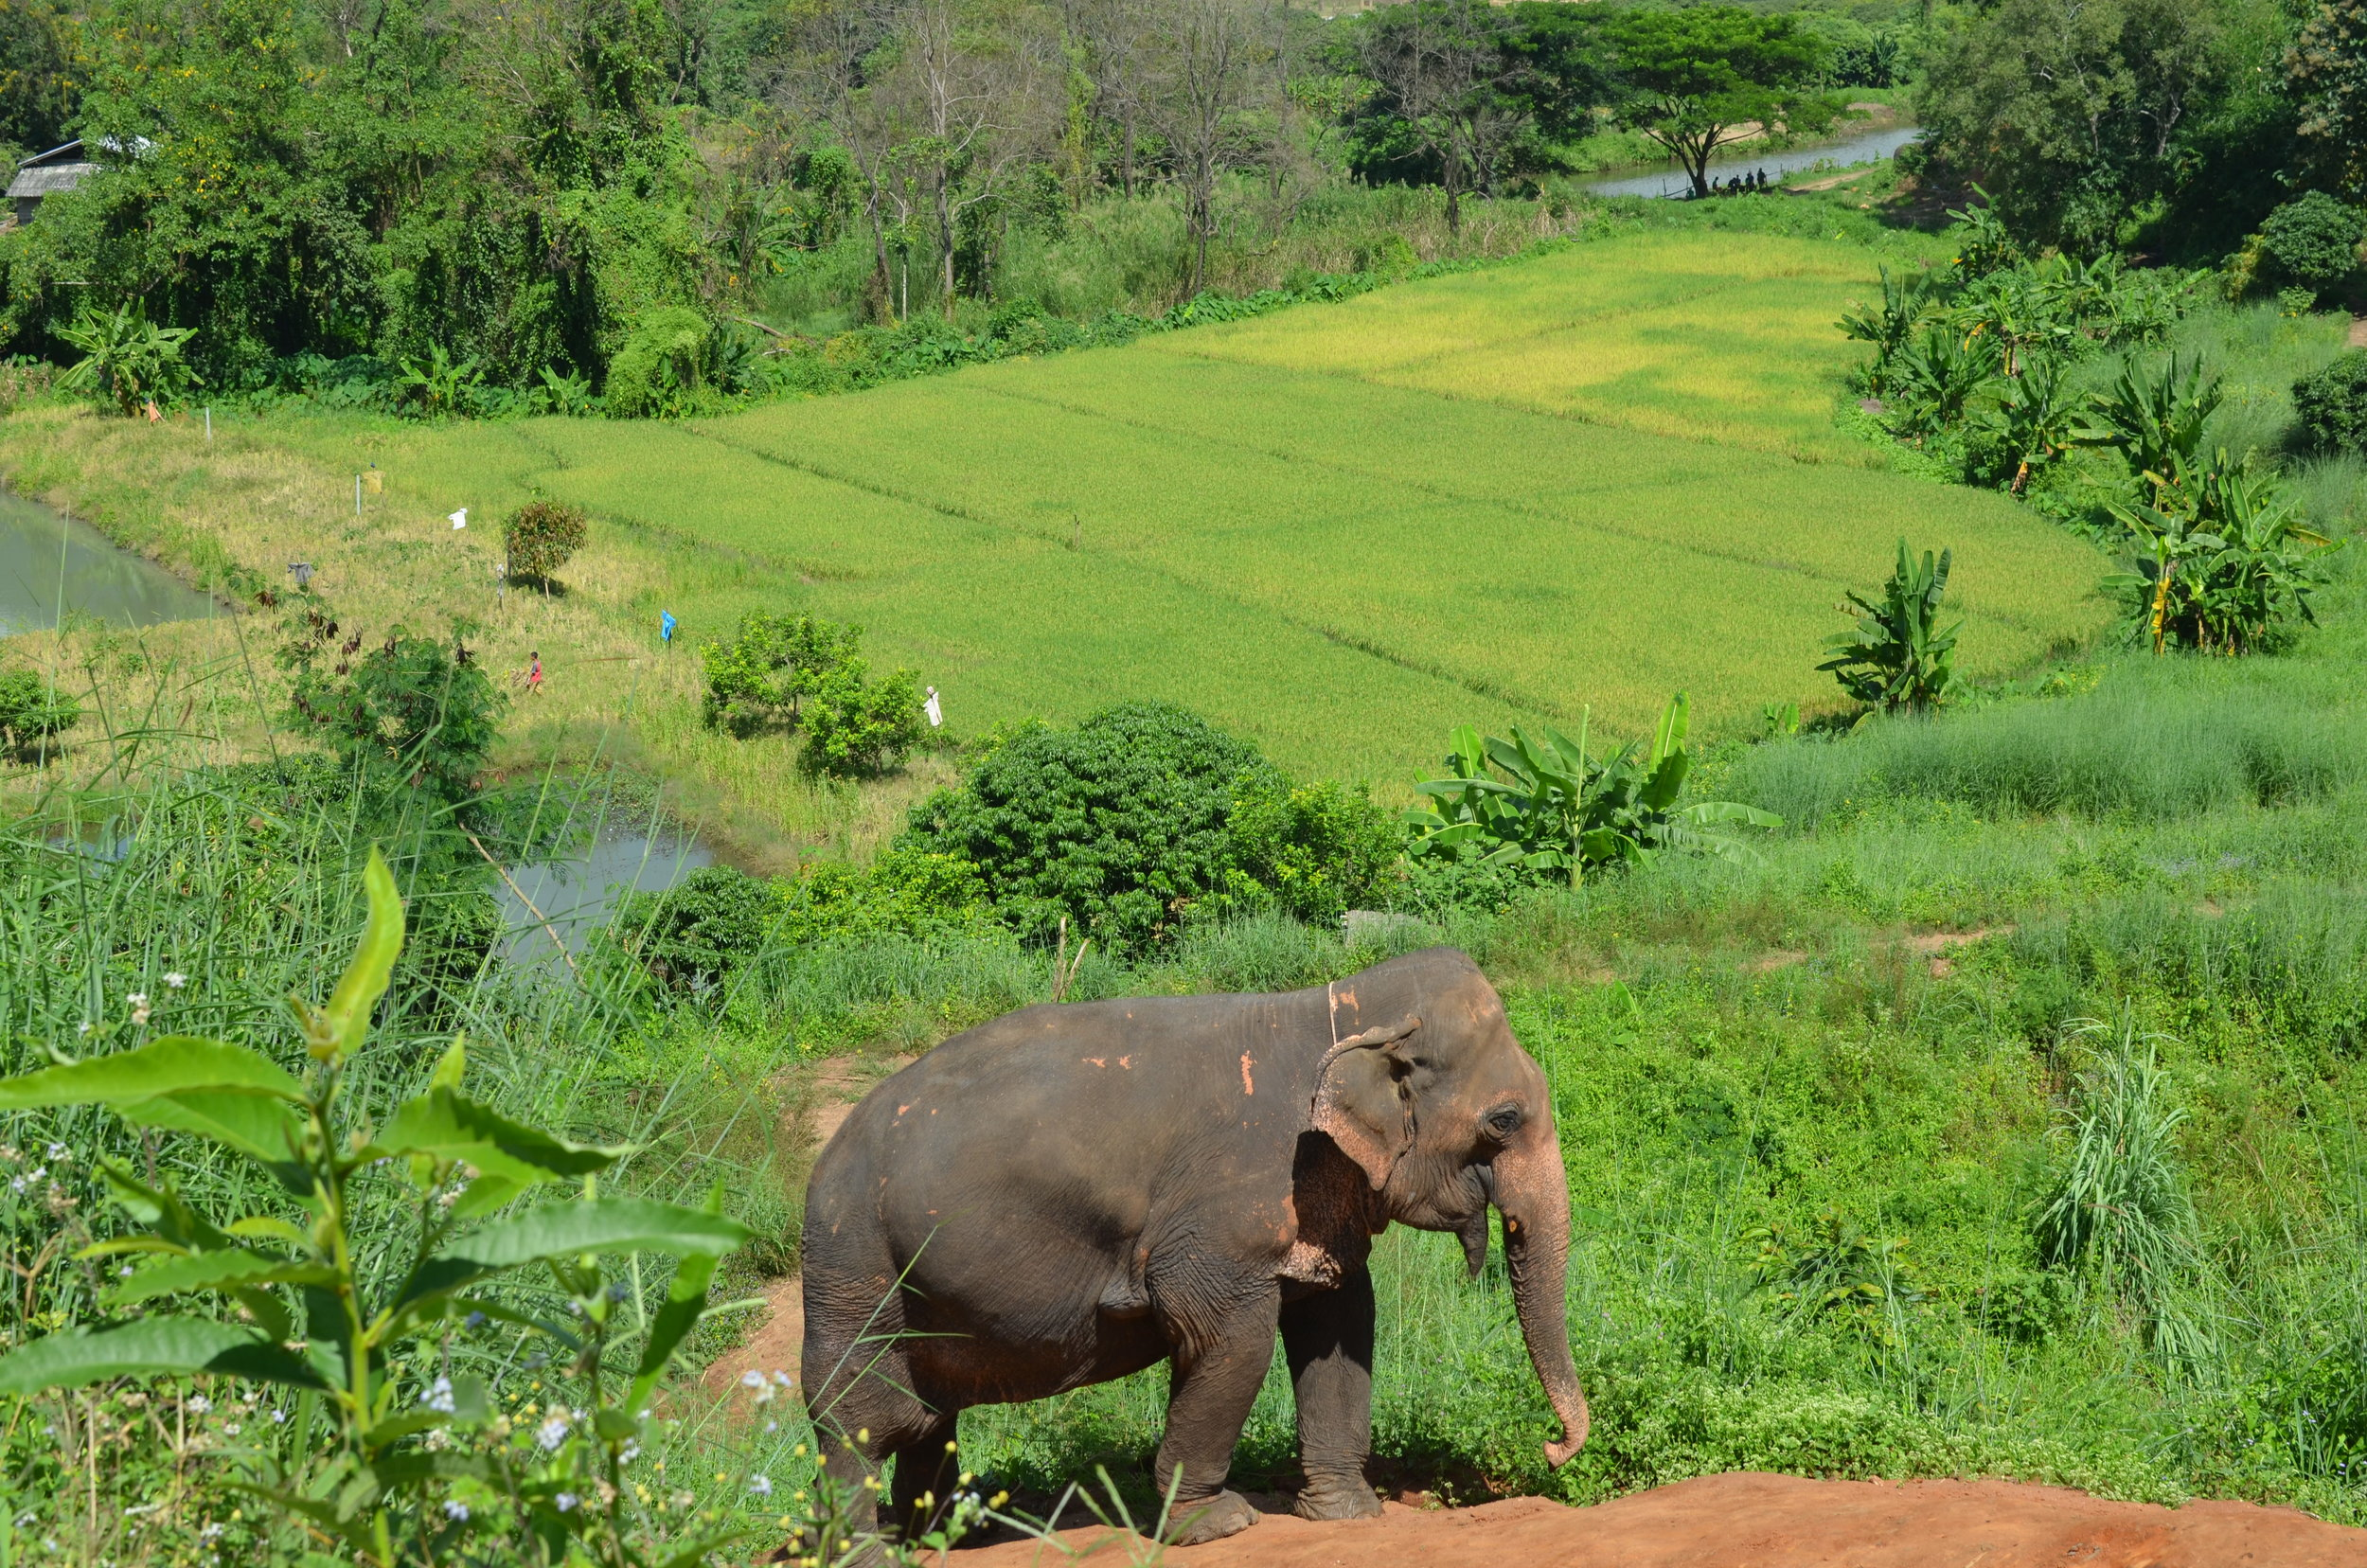 View of the valley where Happy Elephant Home is located just outside of Chiang Mai